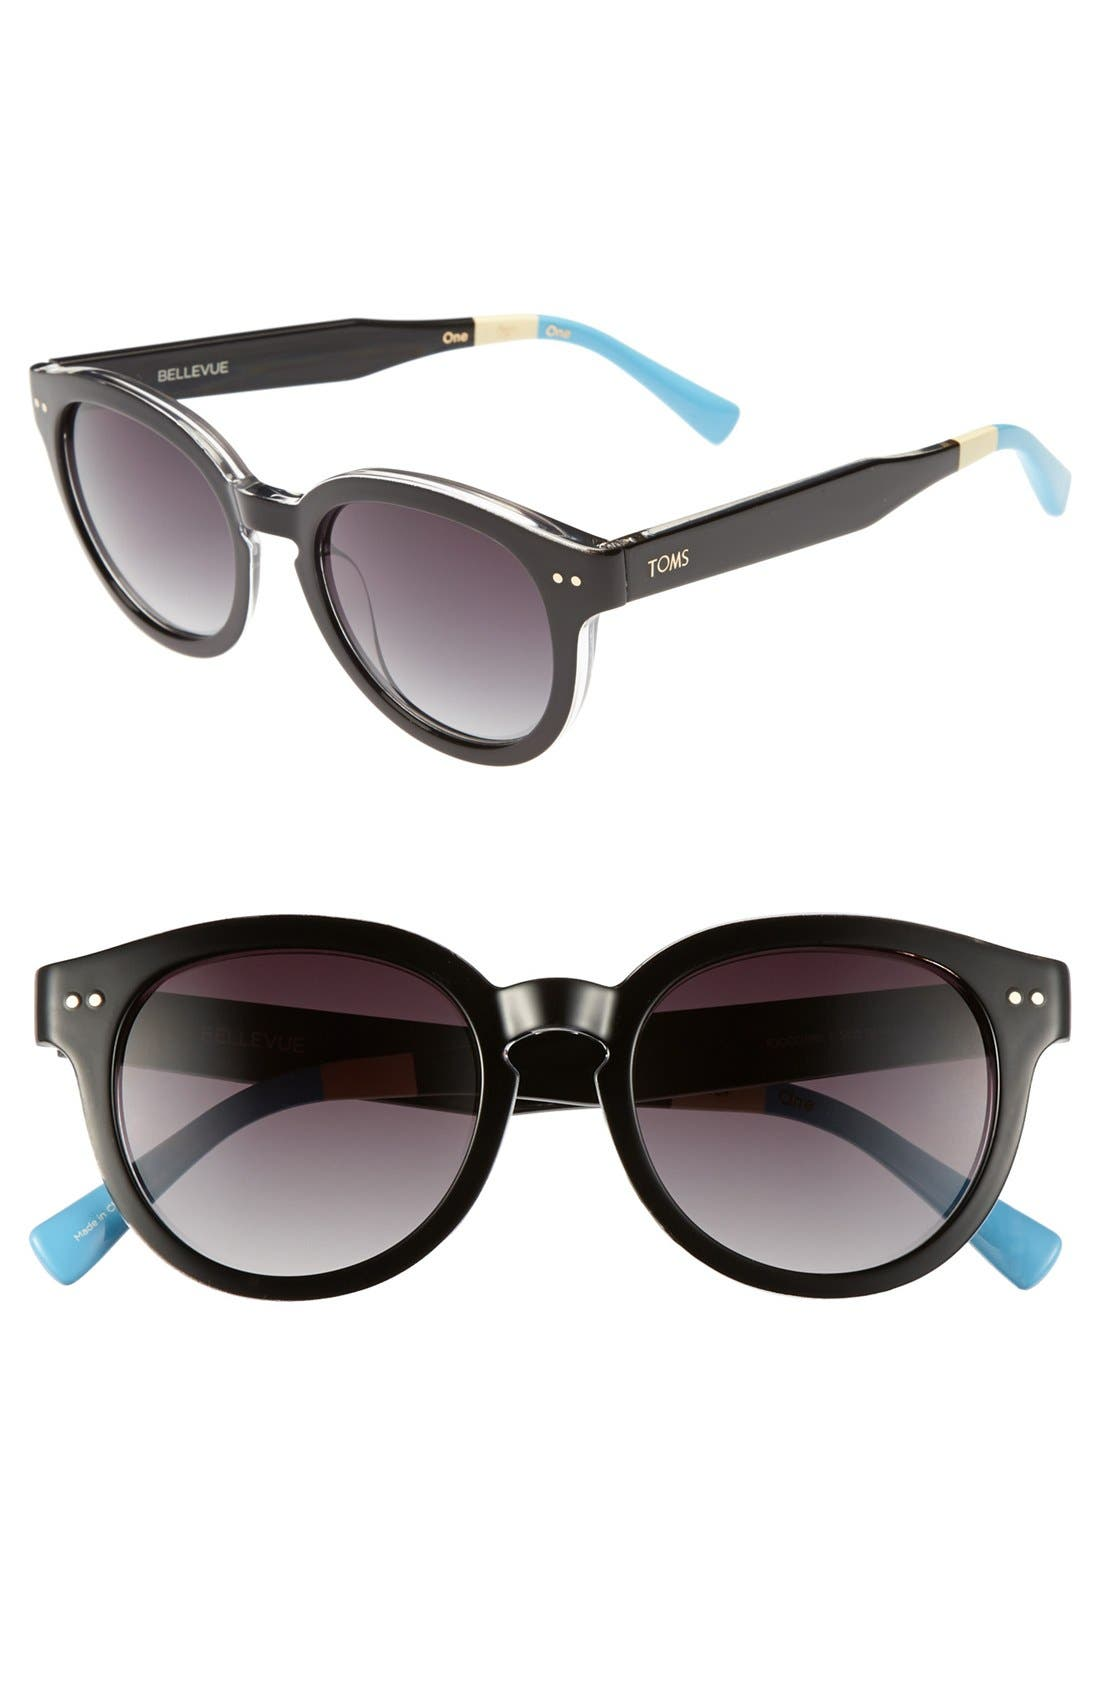 Main Image - TOMS 'Bellevue' 52mm Sunglasses